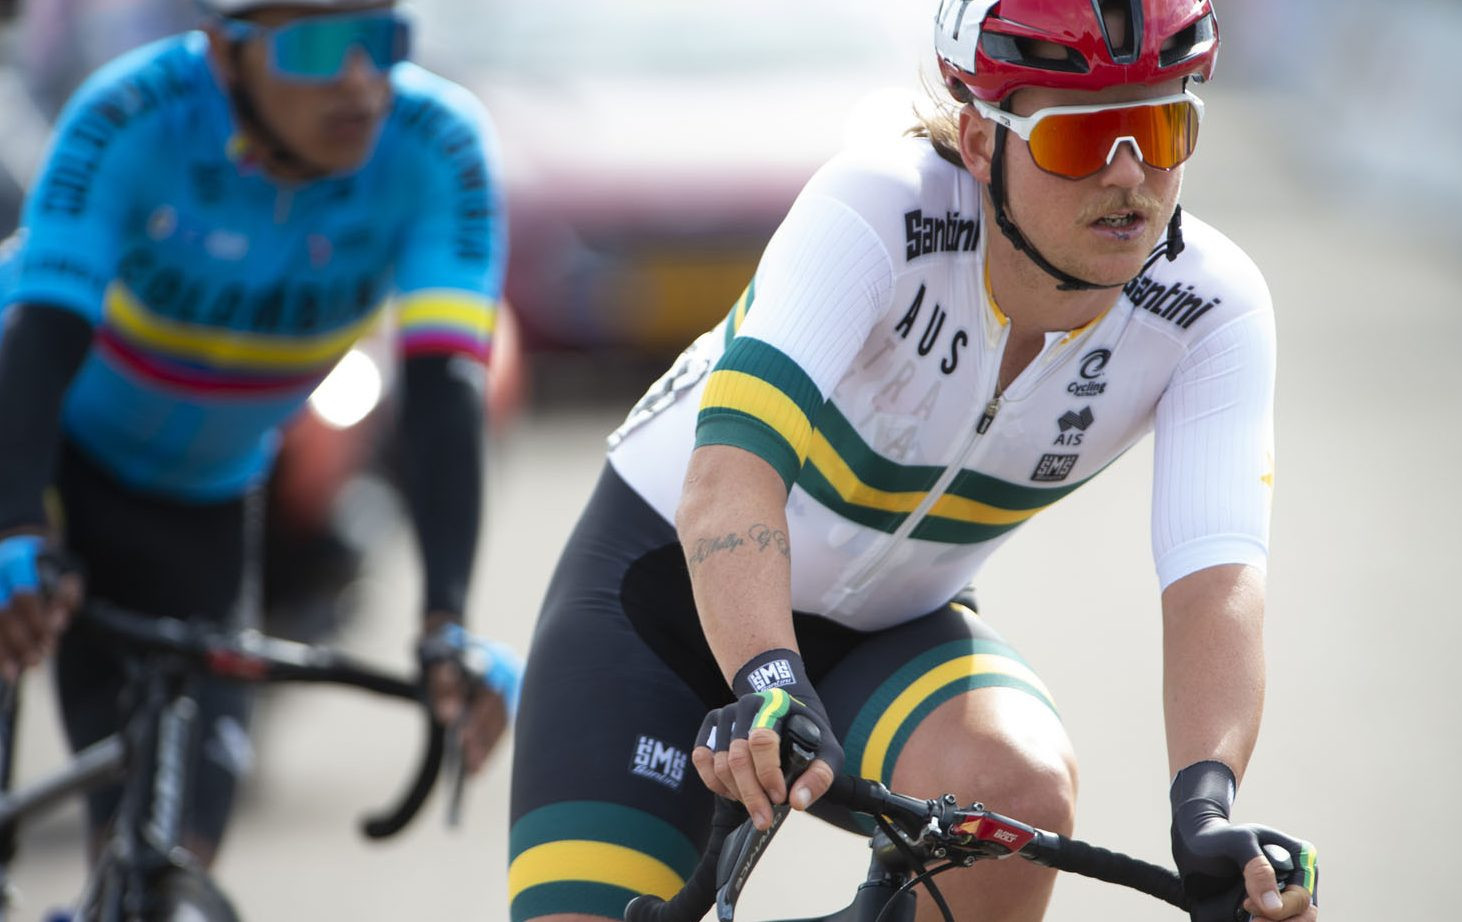 Australian team named for UCI Para-cycling Road World Championships